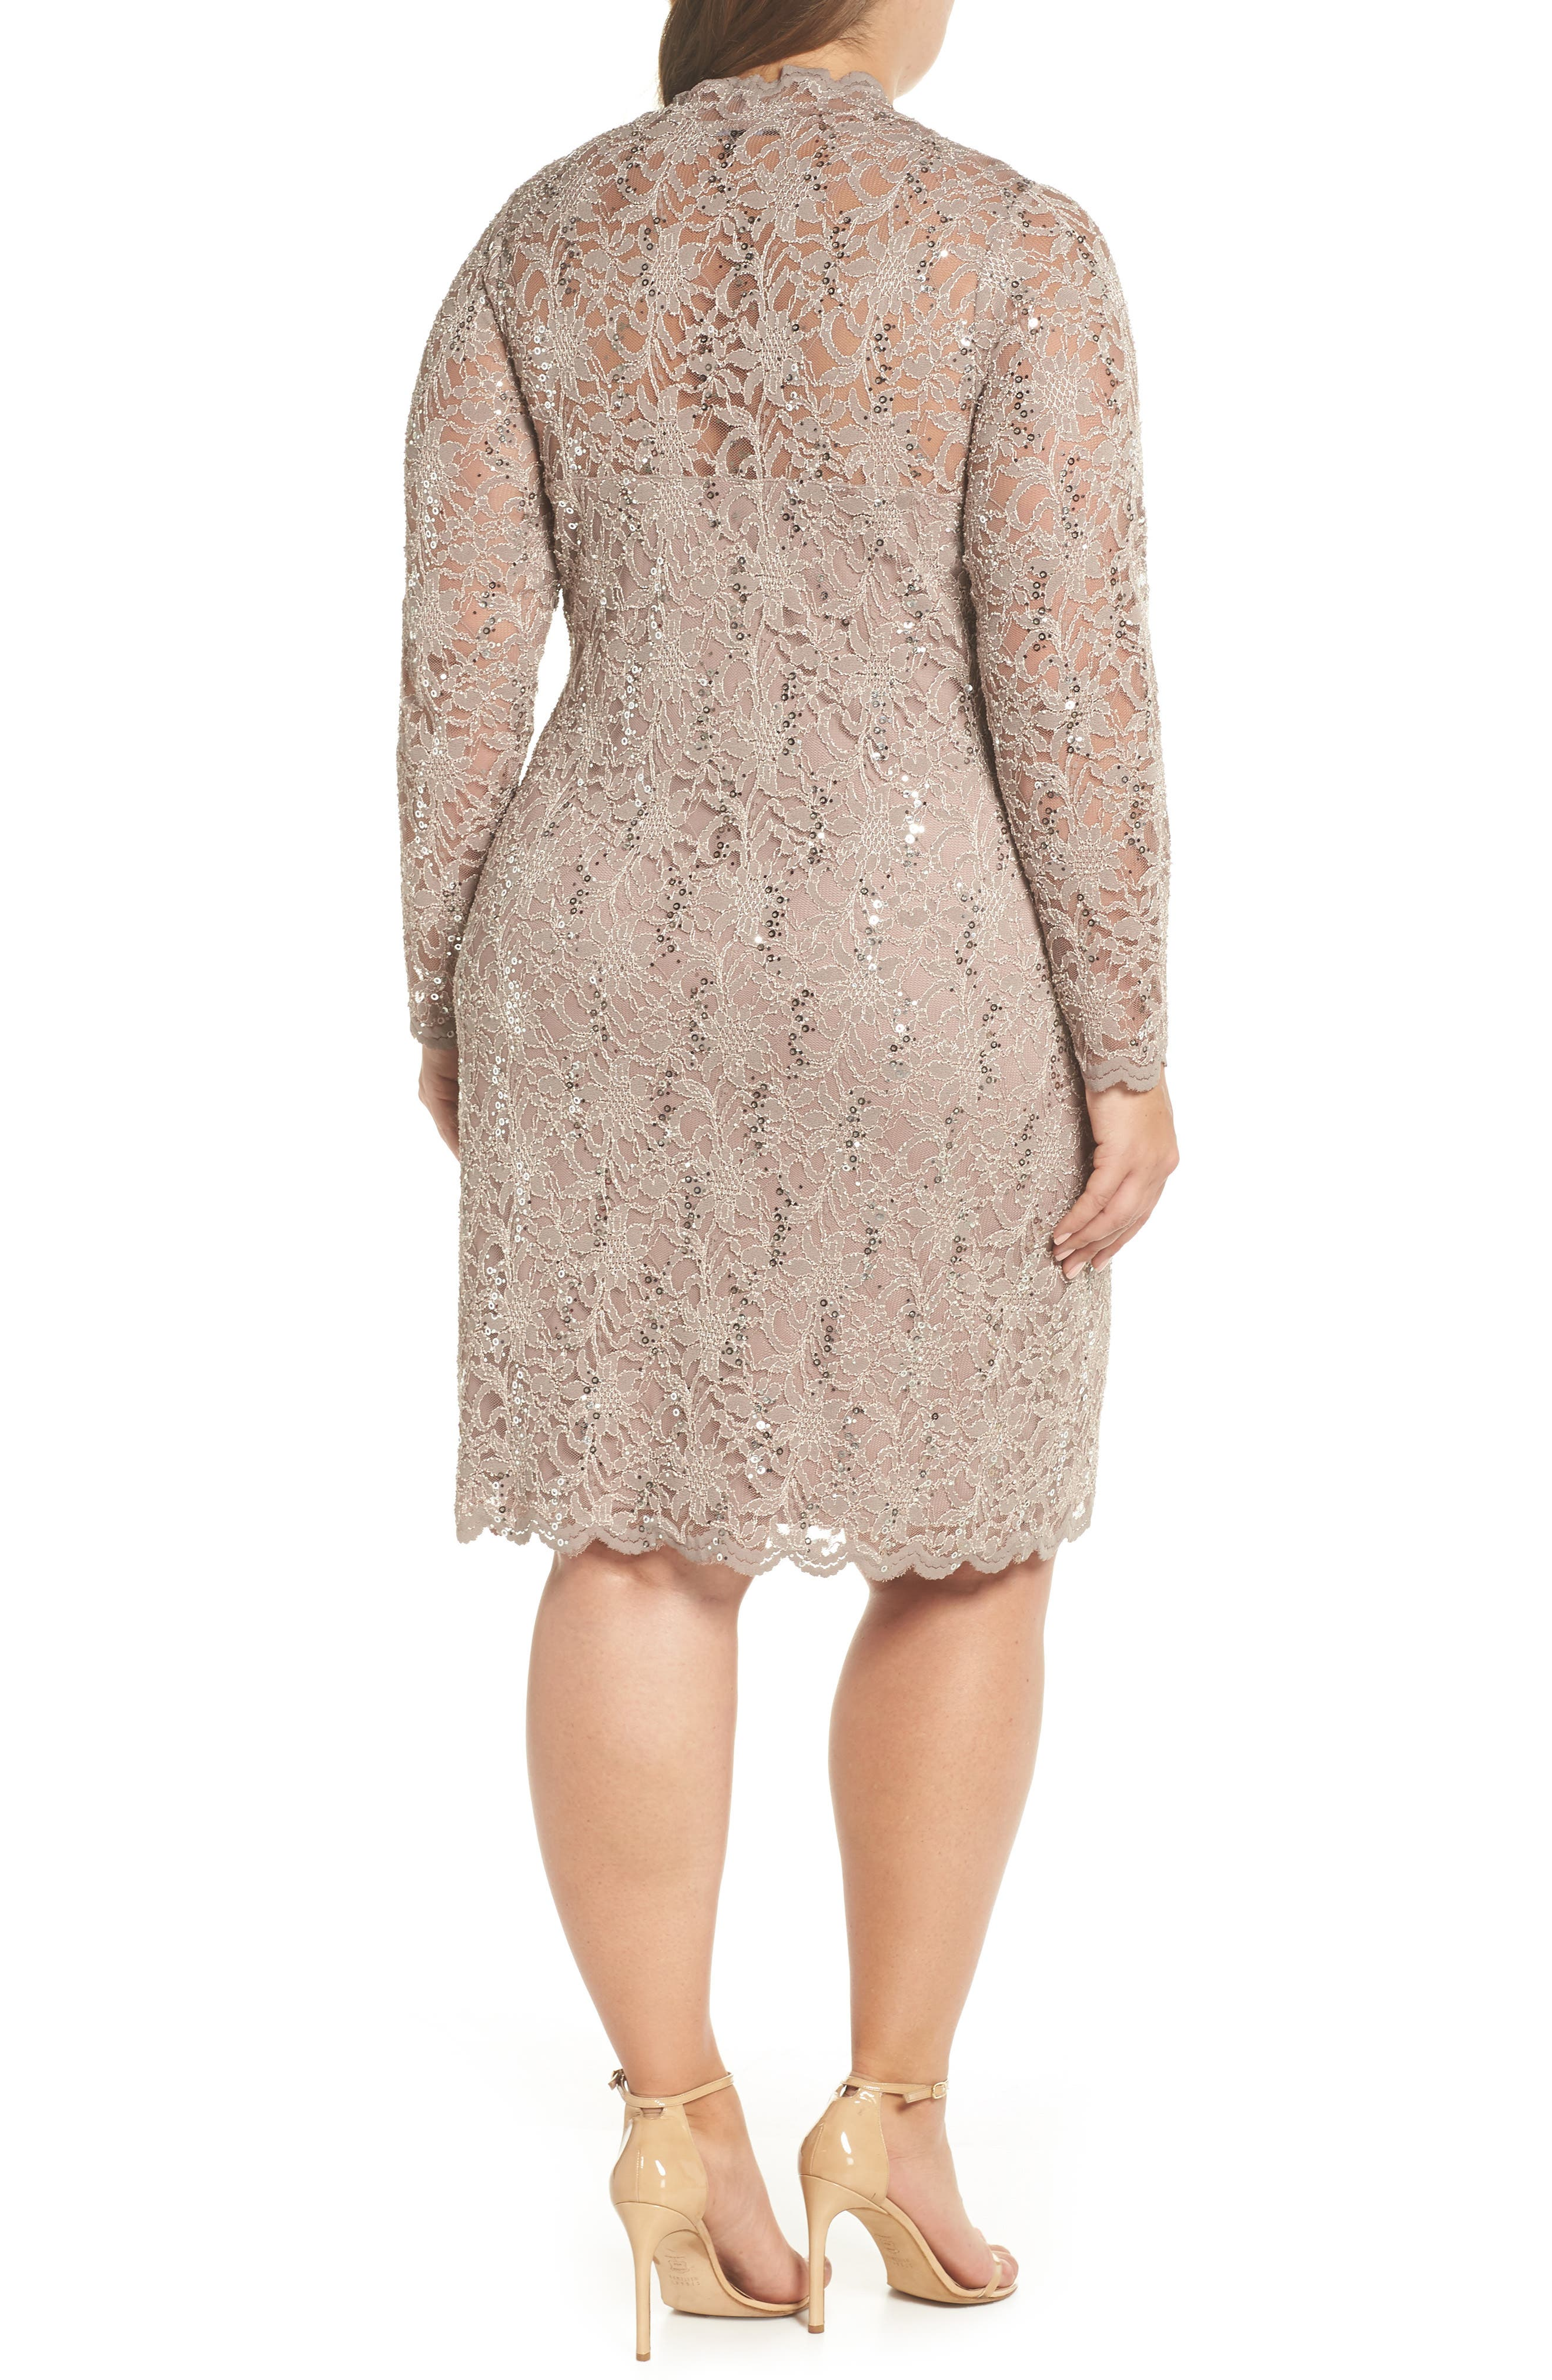 Sequin Stretch Lace Sheath Dress,                             Alternate thumbnail 2, color,                             TAUPE